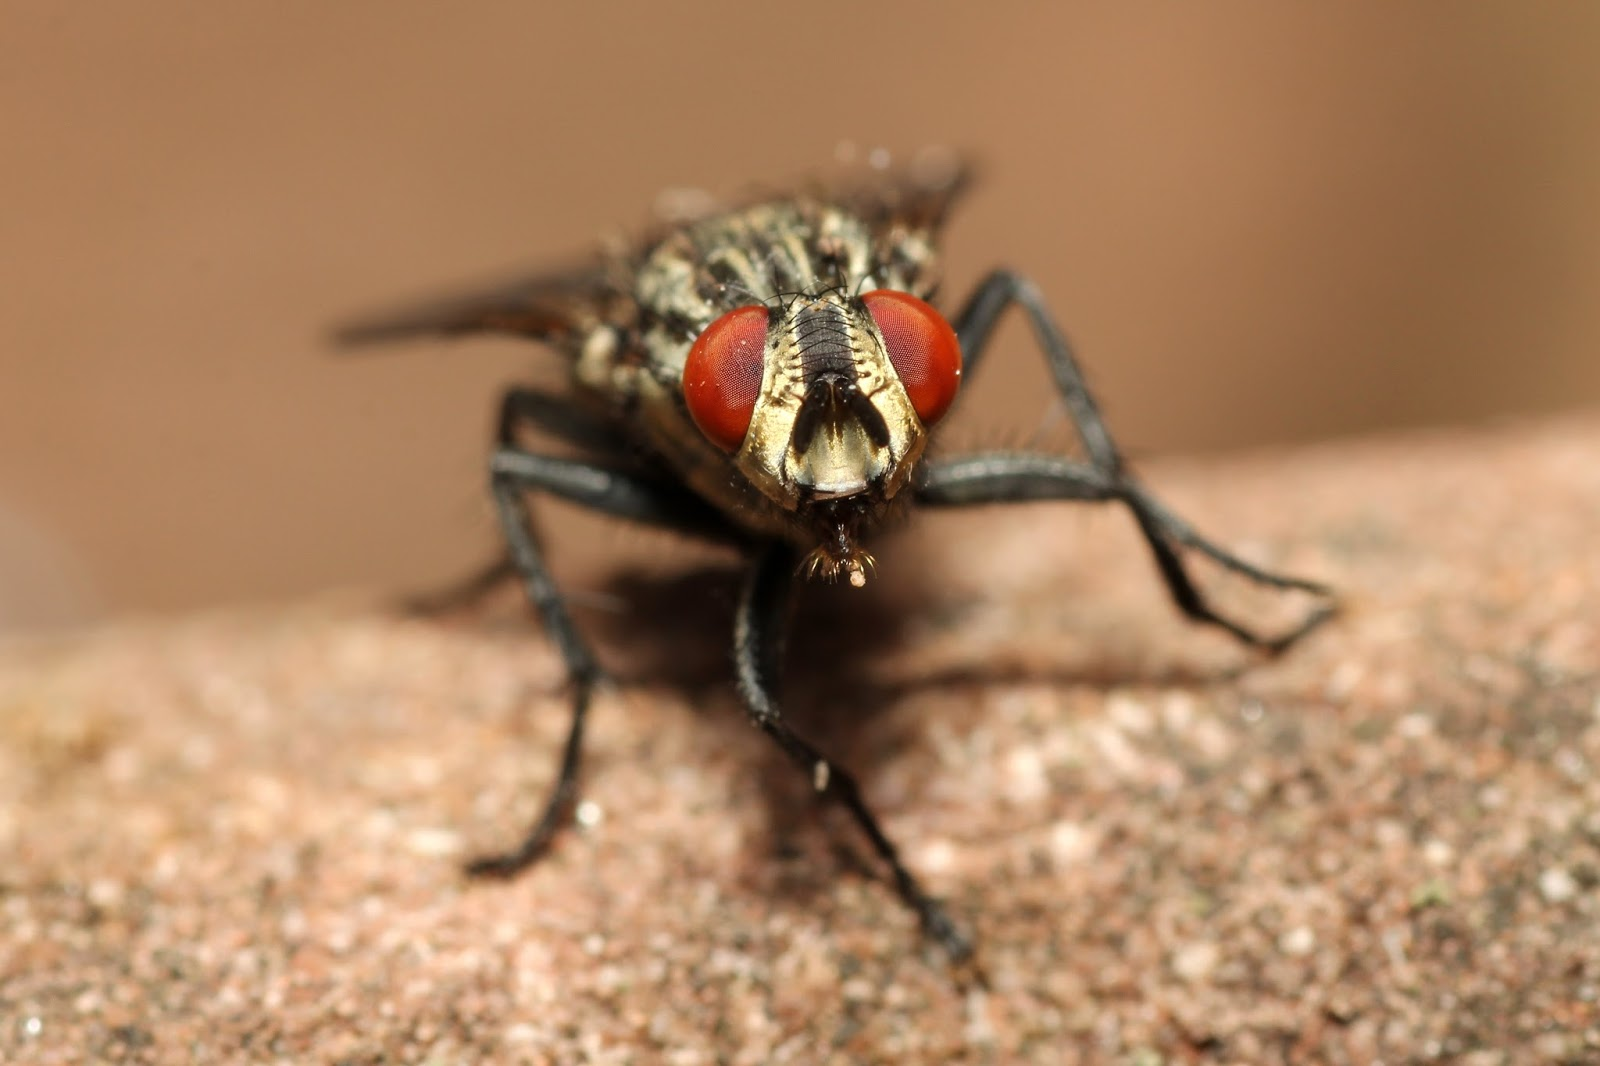 Picture of a housefly body and eyes.